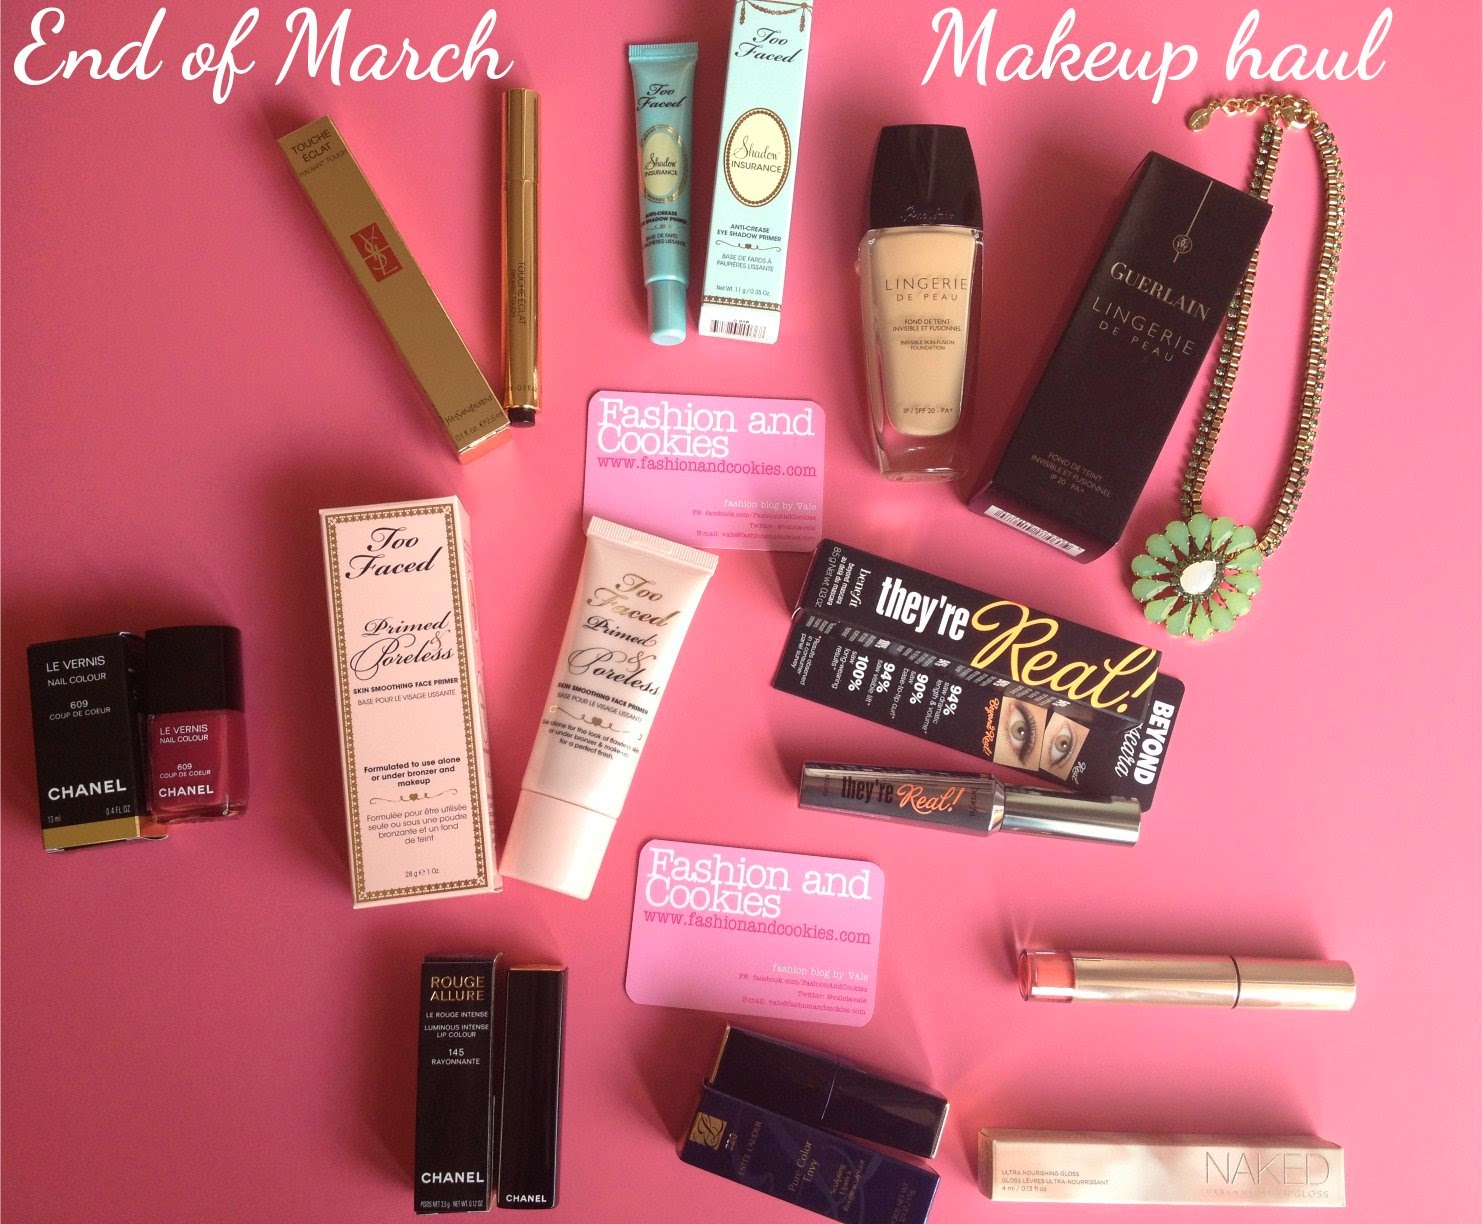 end of march makeup haul, Fashion and Cookies, fashion blogger